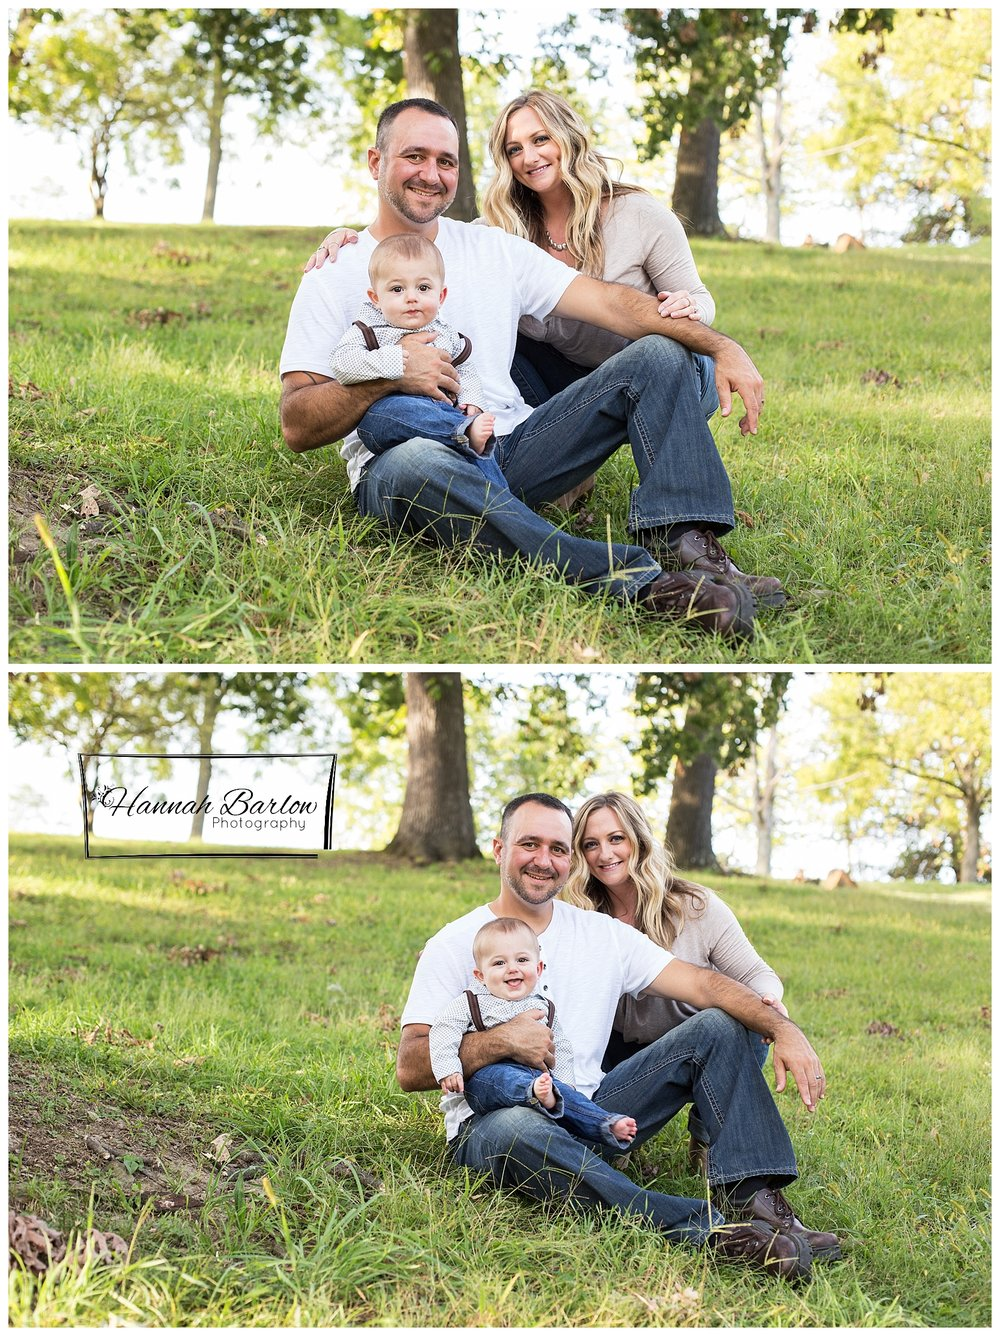 Washington, Pa Family Photography